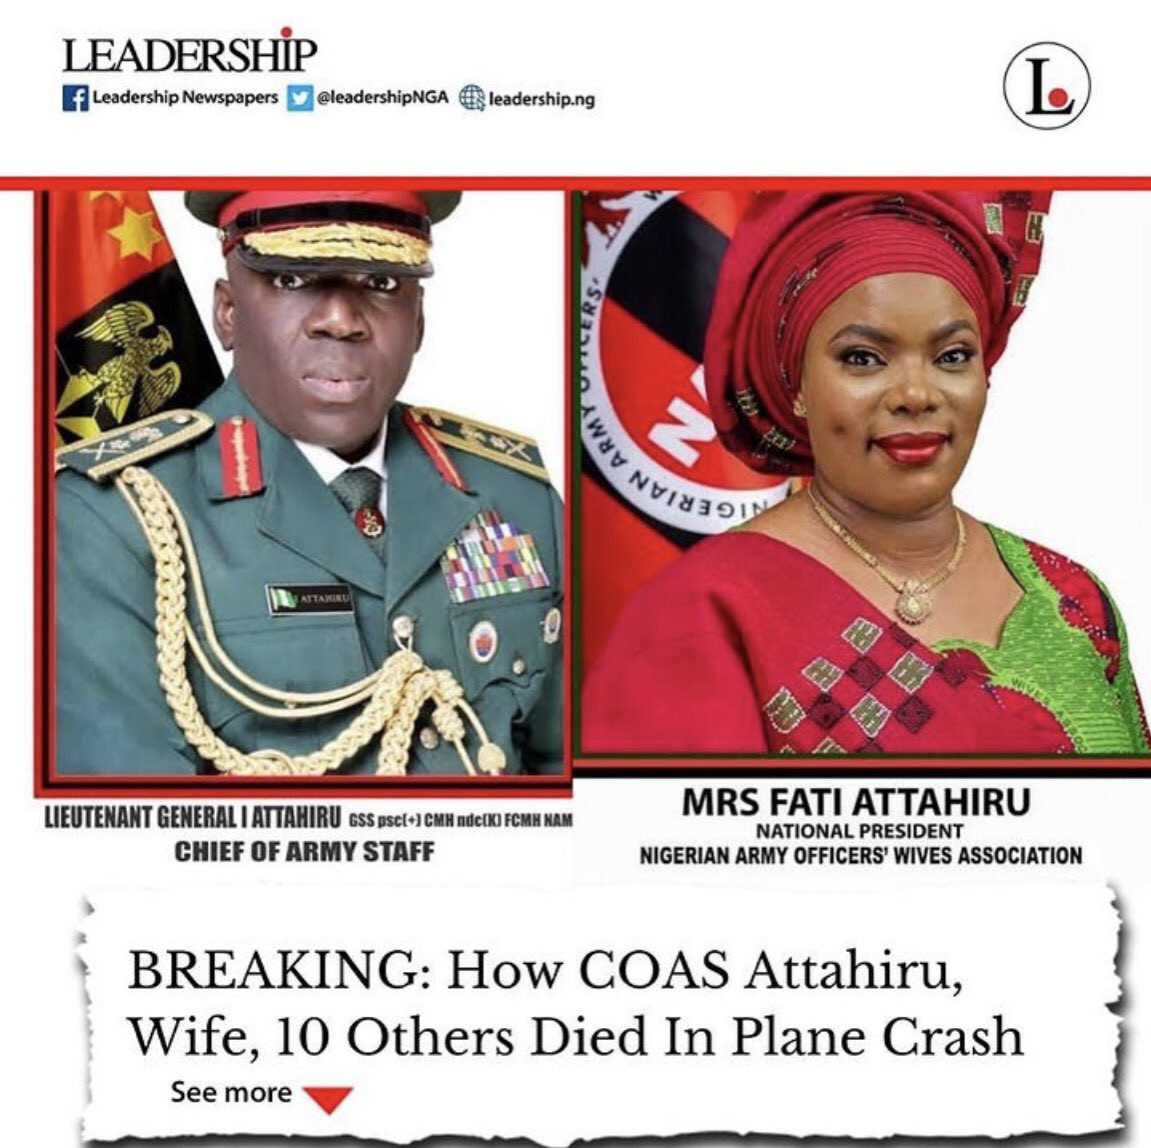 Sad! Wife of Chief of Army Staff, Mrs Fati Attahiru, also perished in the ill-fated military aircraft